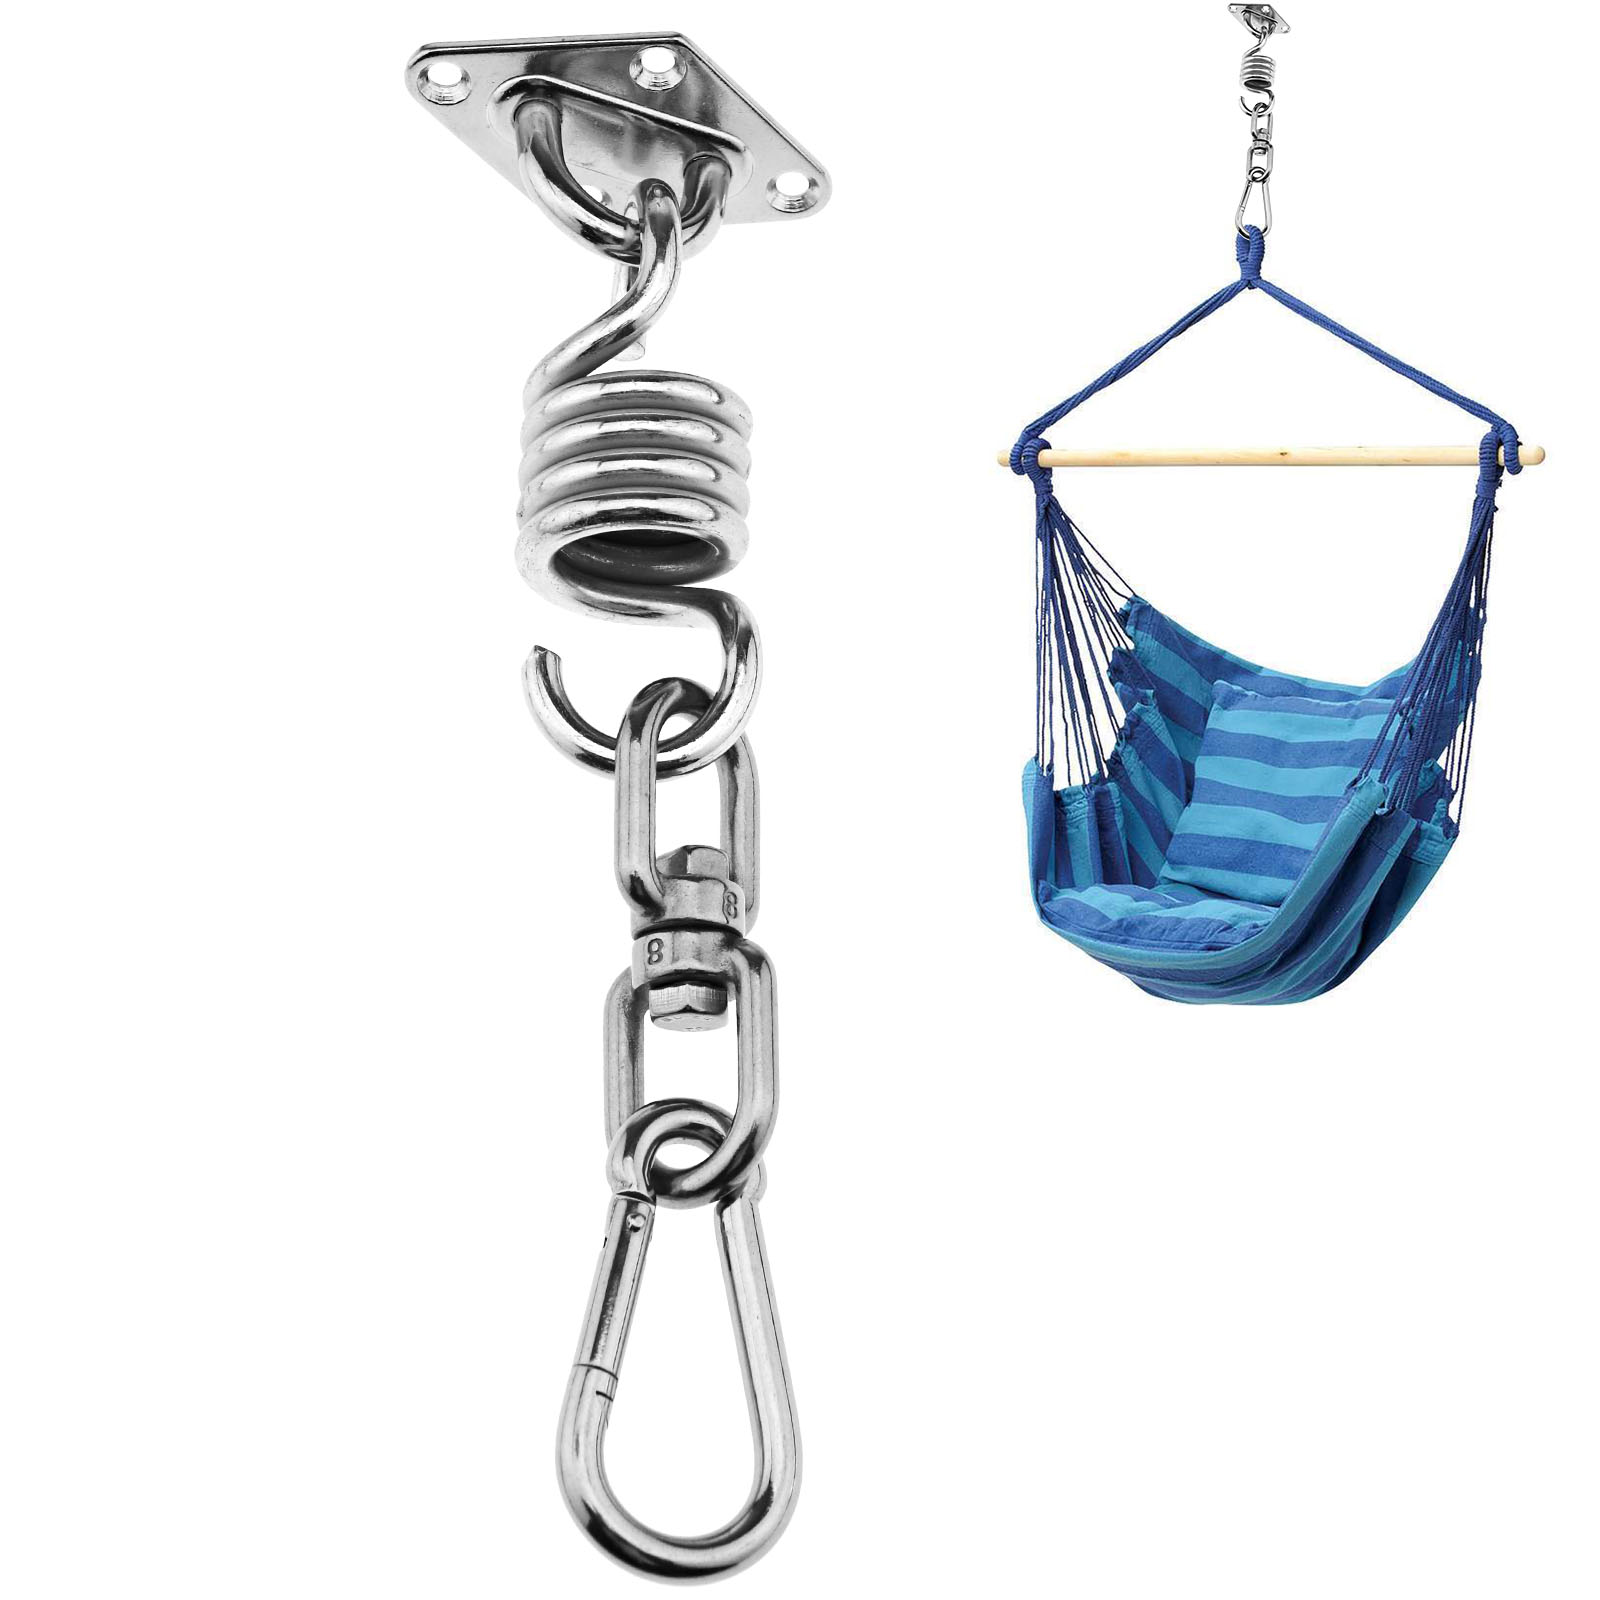 Hammock Chair Hanging Kit Ceiling Mount Spring Snap Swivel